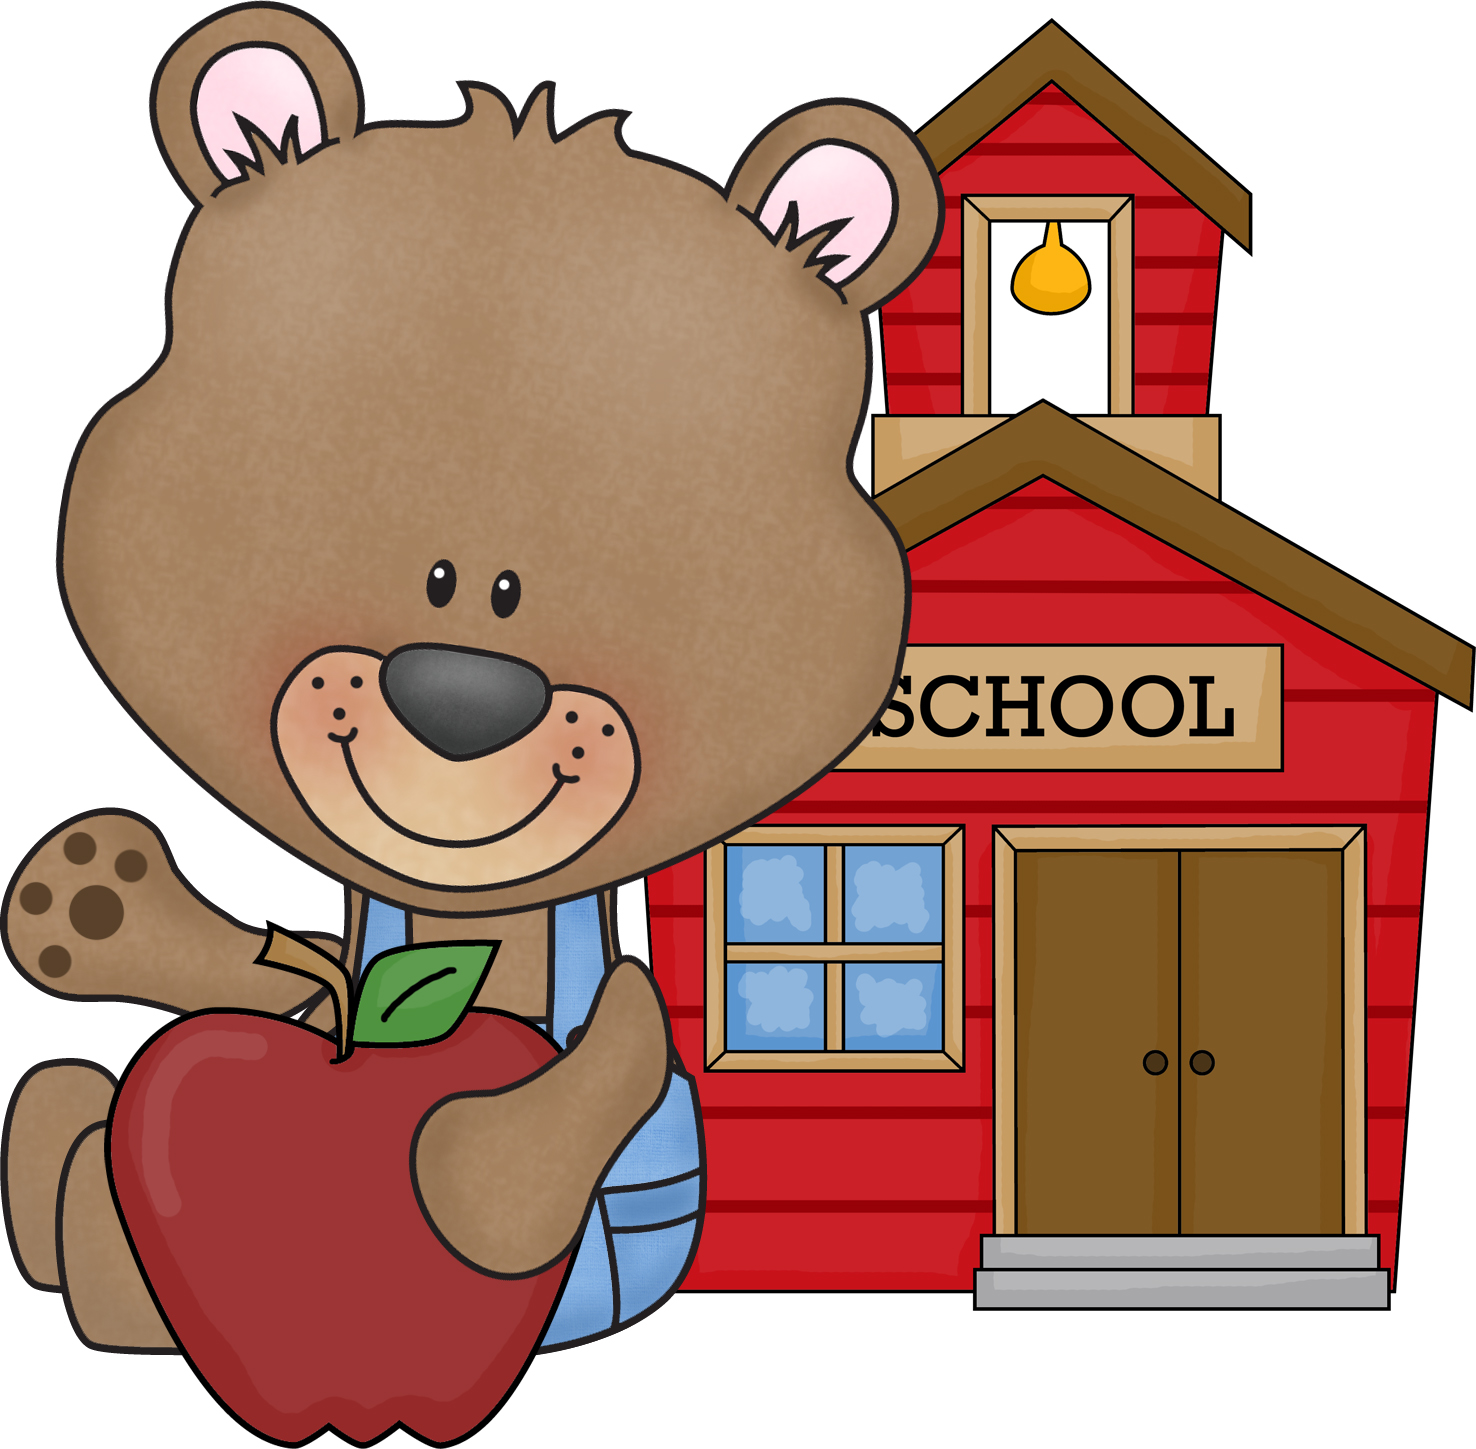 elementary school clipart at getdrawings com free for personal use rh getdrawings com cute school clipart free cute school clipart png